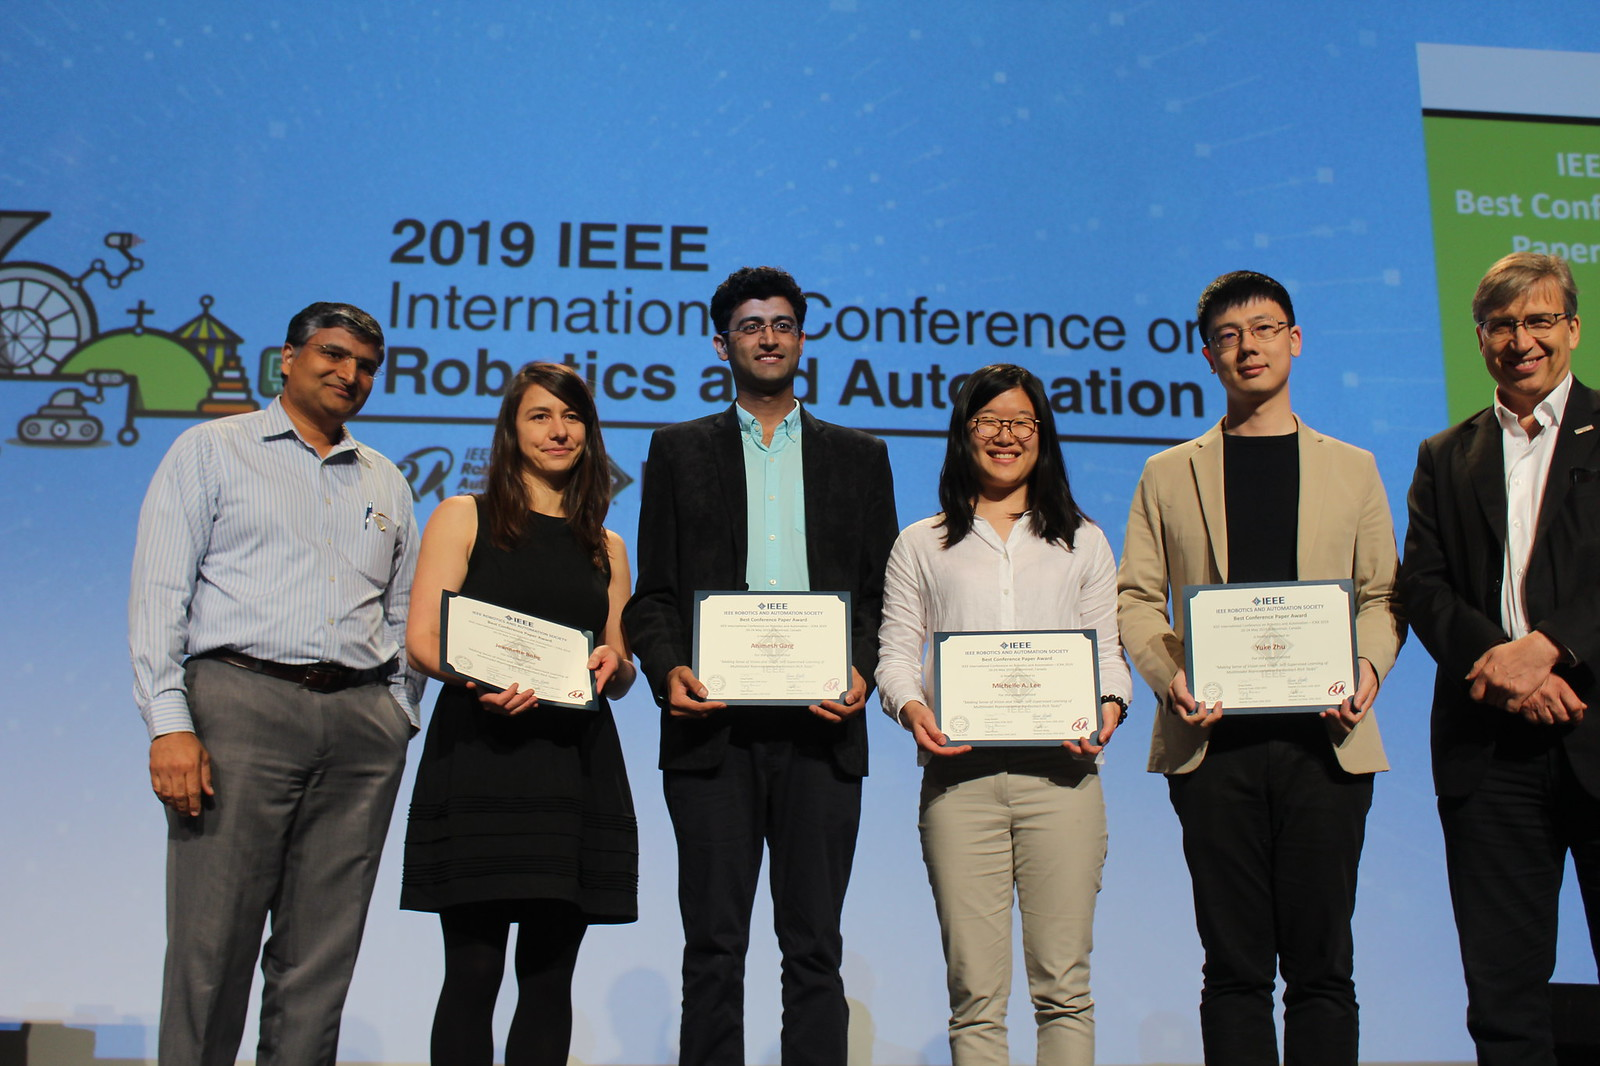 "Animesh Garg, who joins the University of Toronto Robotics Institute this summer, receives ""Best Paper Award at ICRA 2019 for Making Sense of Vision and Touch: Self-Supervised Learning of Multimodal Representations for Contact-Rich Tasks"" ( Michelle Lee, Yuke Zhu, Krishnan Srinivasan, Parth Shah, Silvio Savarese, Fei-Fei Li, Animesh Garg, Jeannette Bohg)."